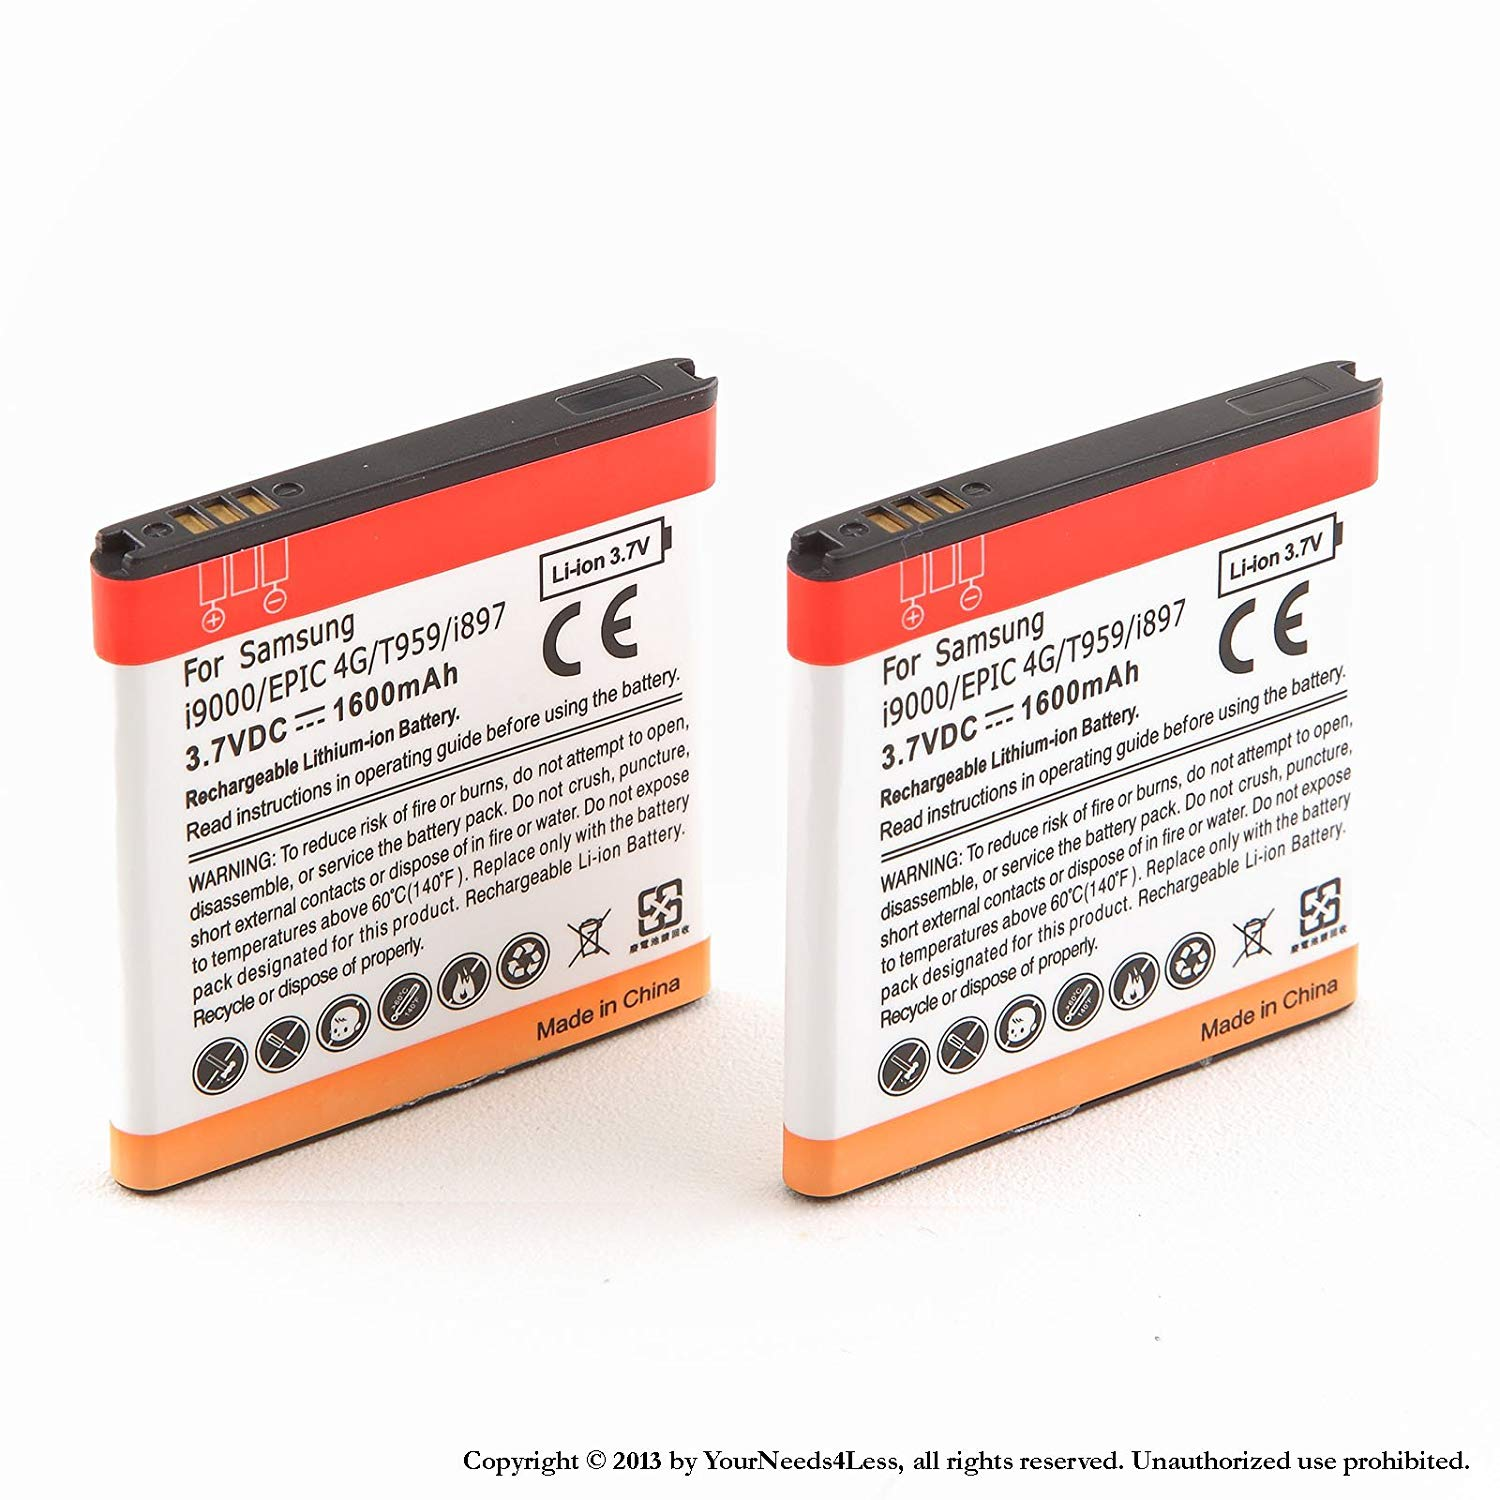 YN4L 2 X 1600mAh Replacement Batteries for Samsung Galaxy S i9000 ; Captivate i897 ; Vibrant T959 ; Epic 4G